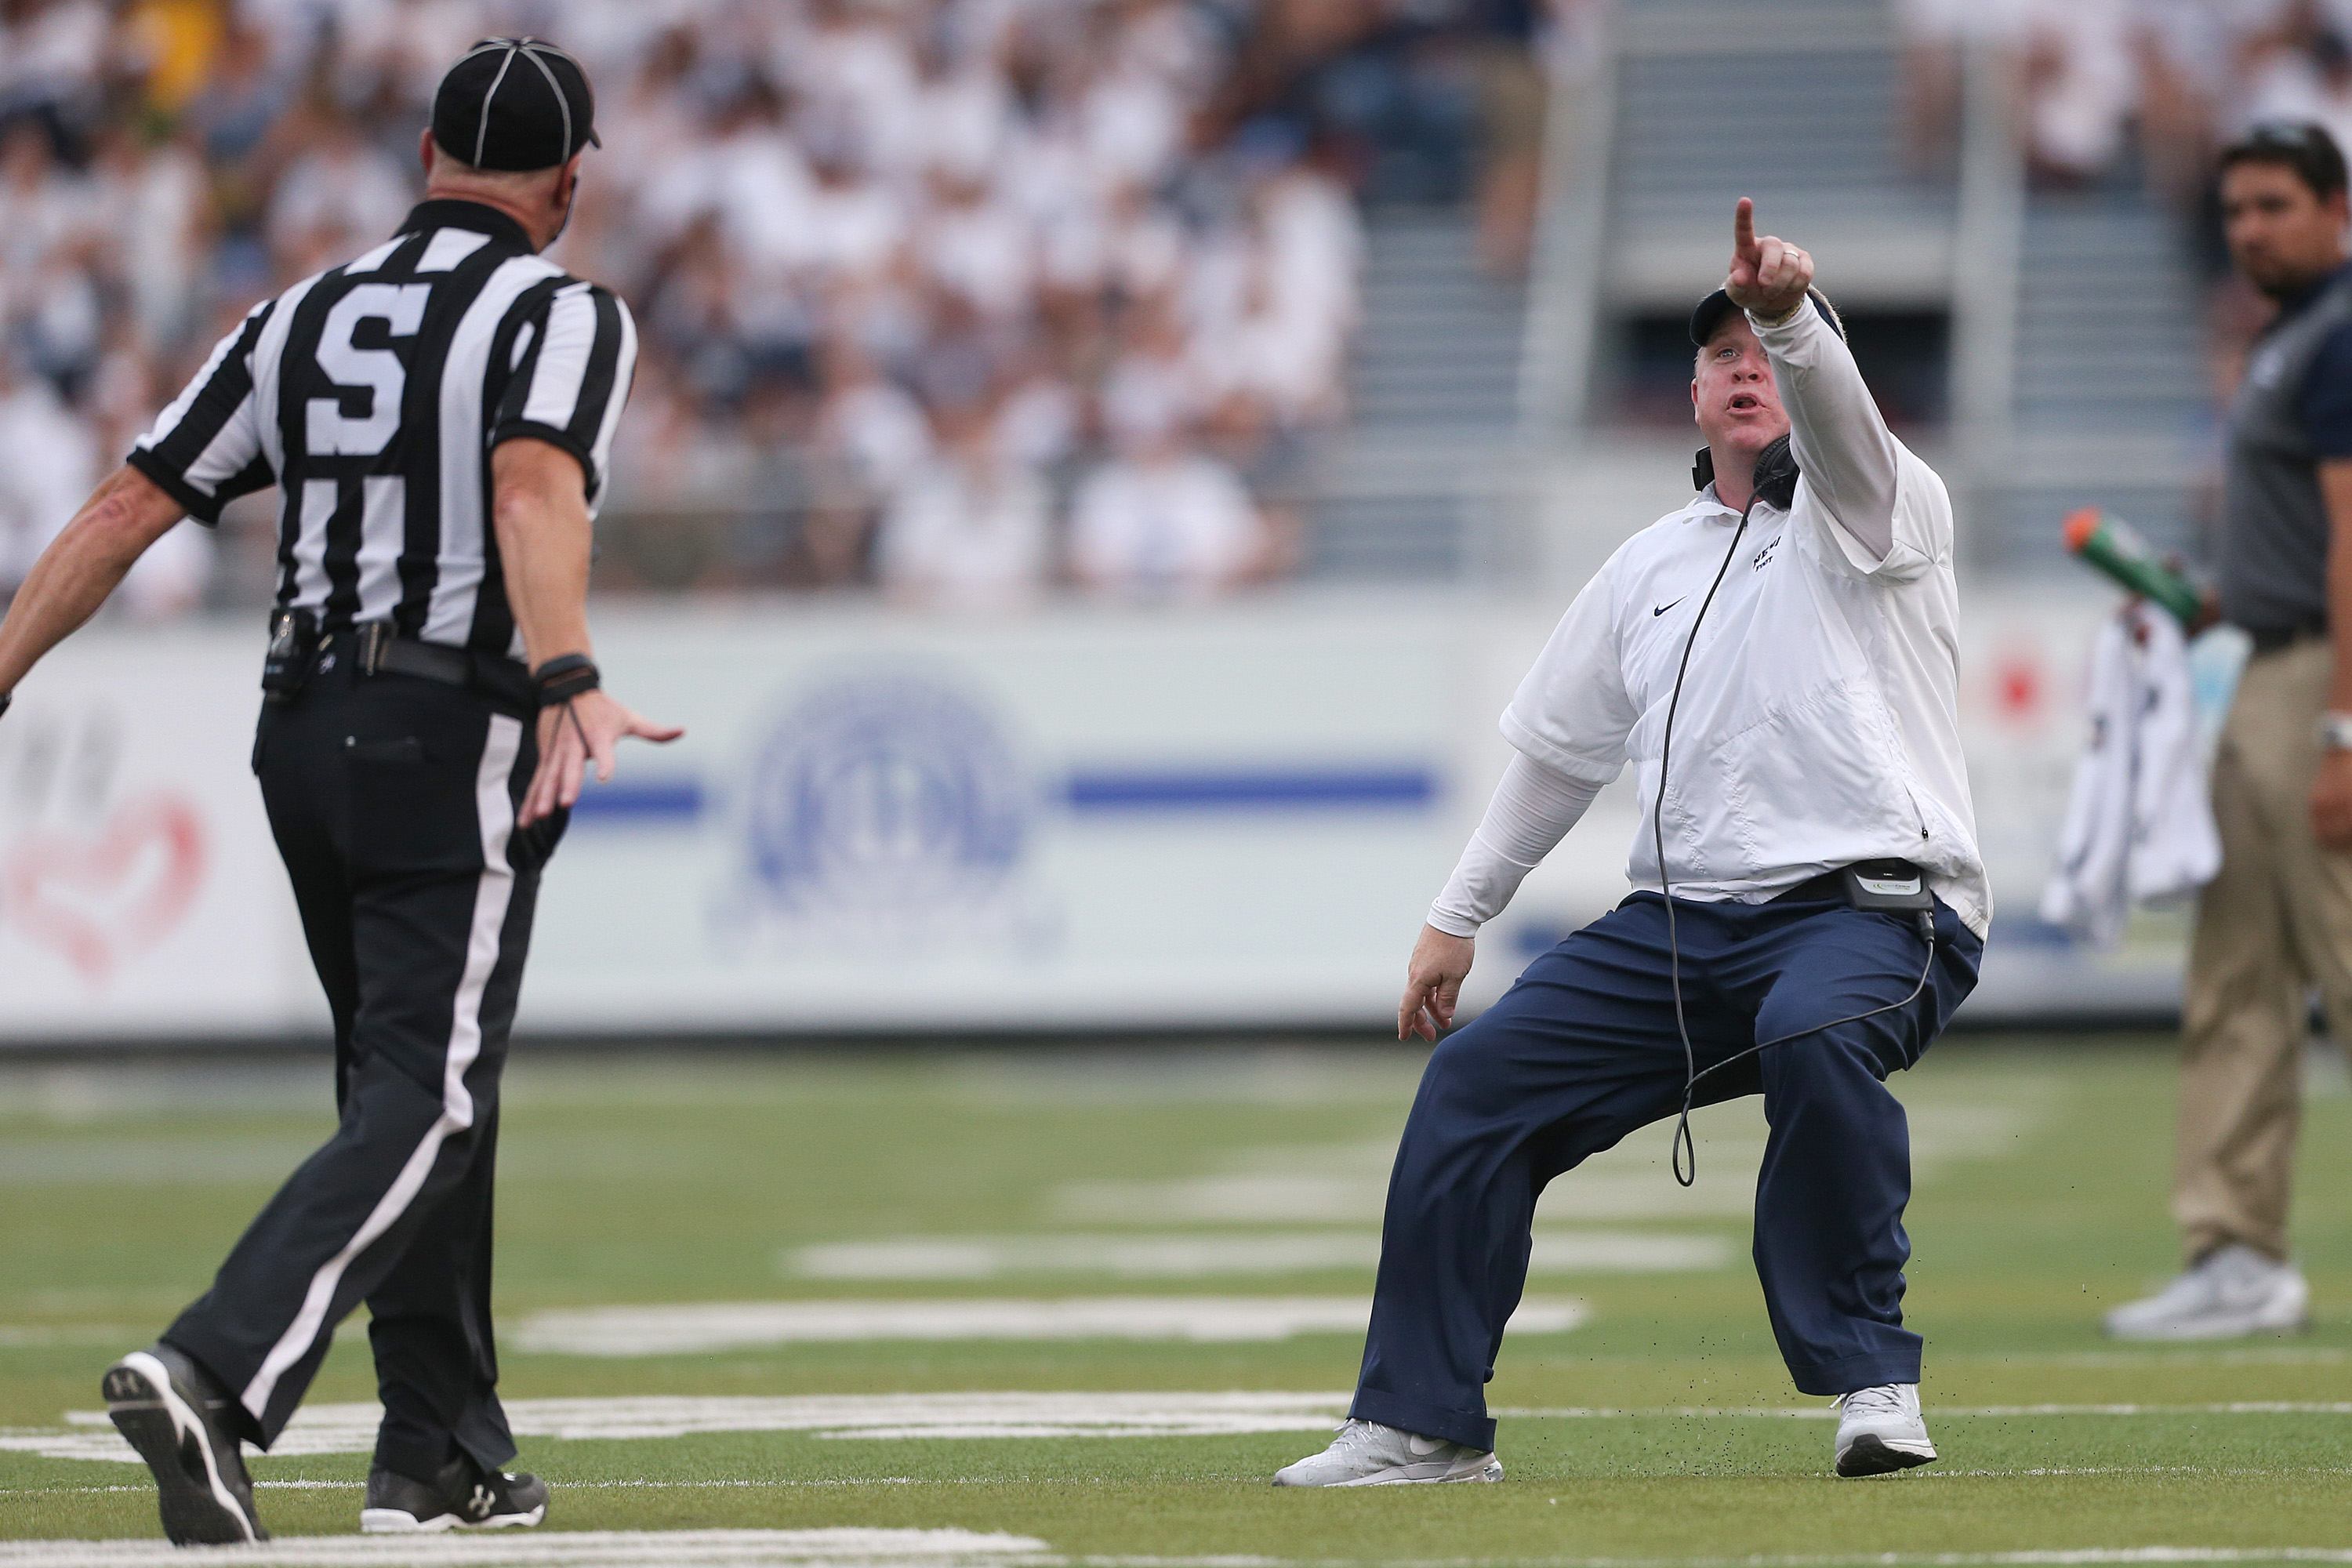 Nevada coach Brian Polian argues with an official over the remaining time during the first half against Arizona in an NCAA college football game in Reno, Nev., on Saturday, Sept. 12, 2015. (AP Photo/Cathleen Allison)